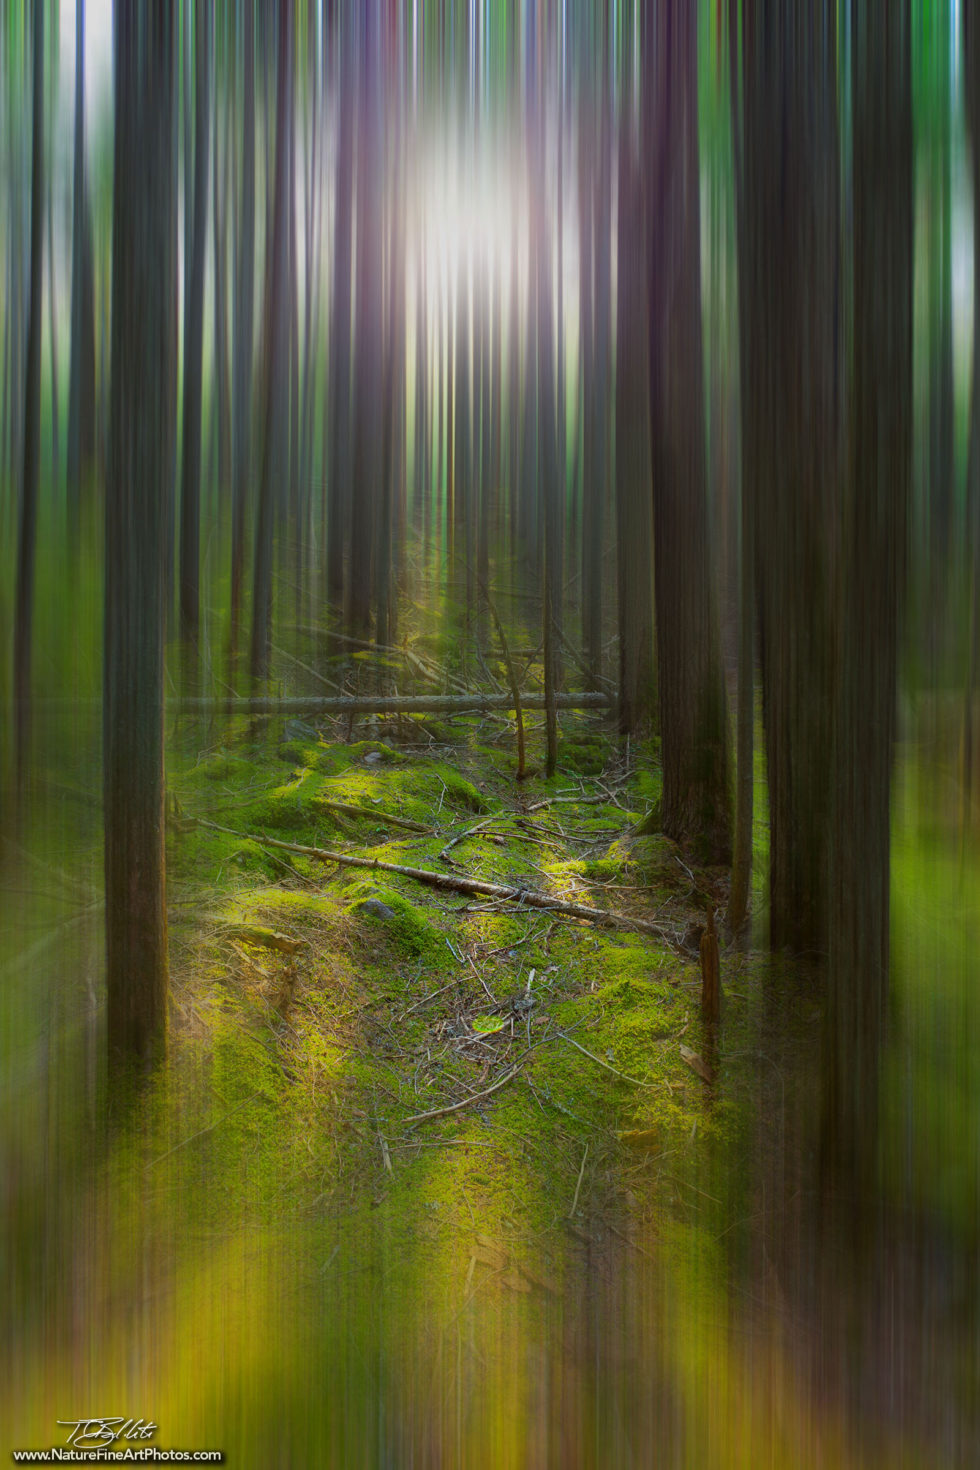 Fine Art Photo of the Enchanted Forest in Motion